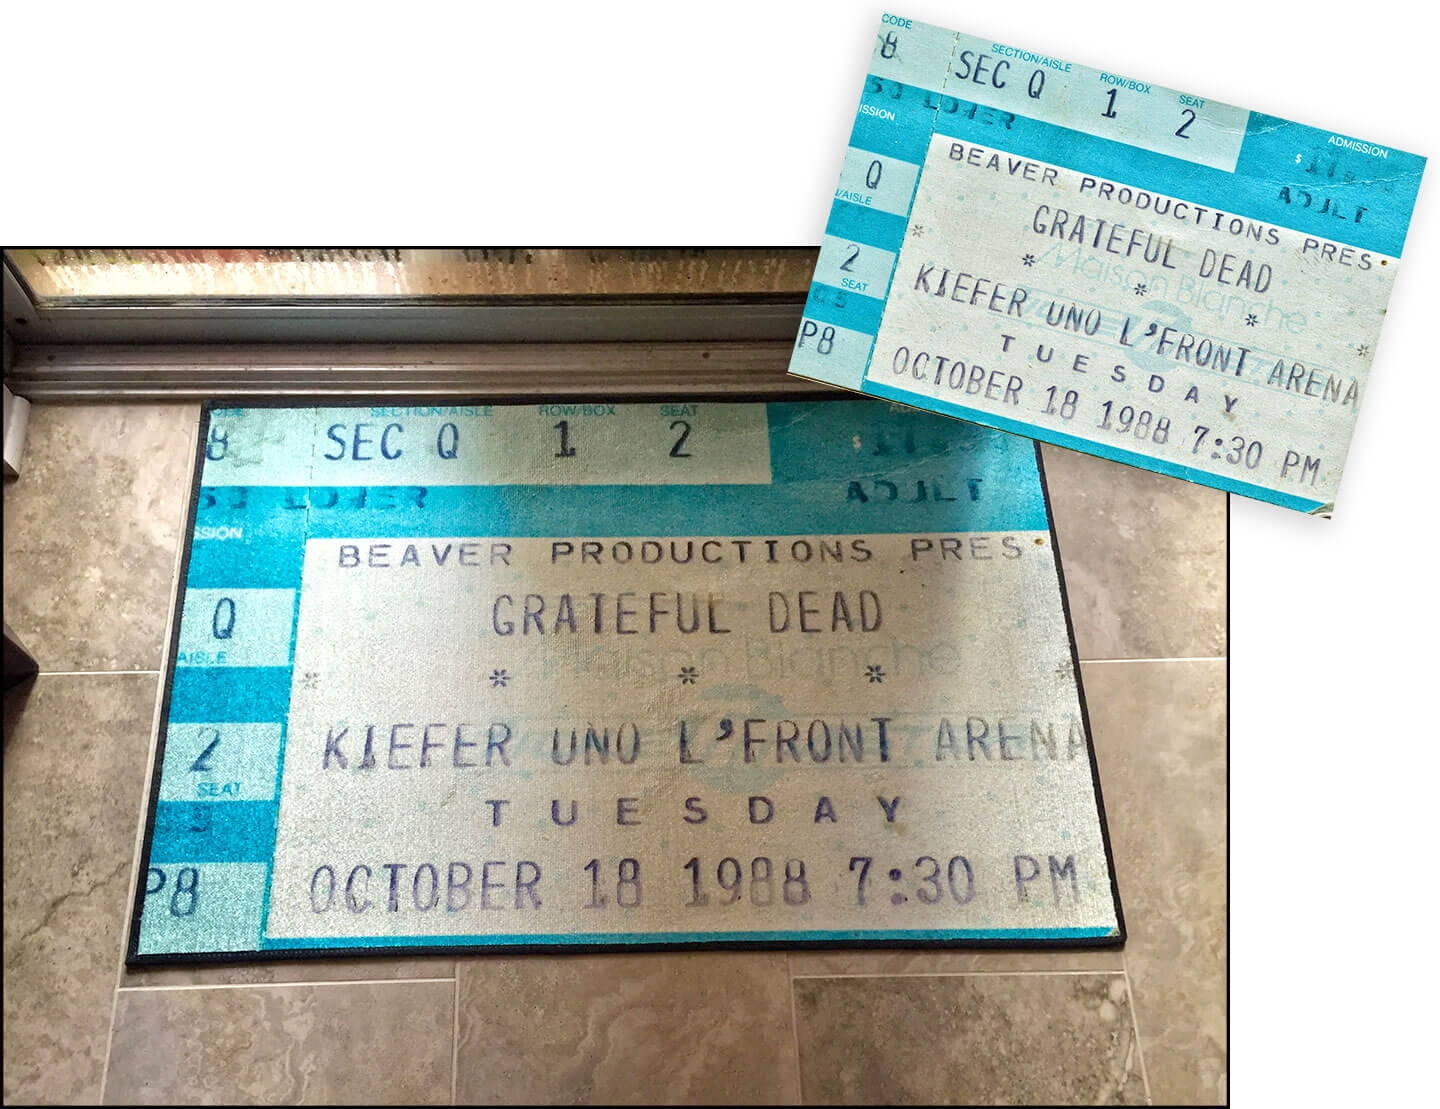 This is a great way to display your concert ticket stubs